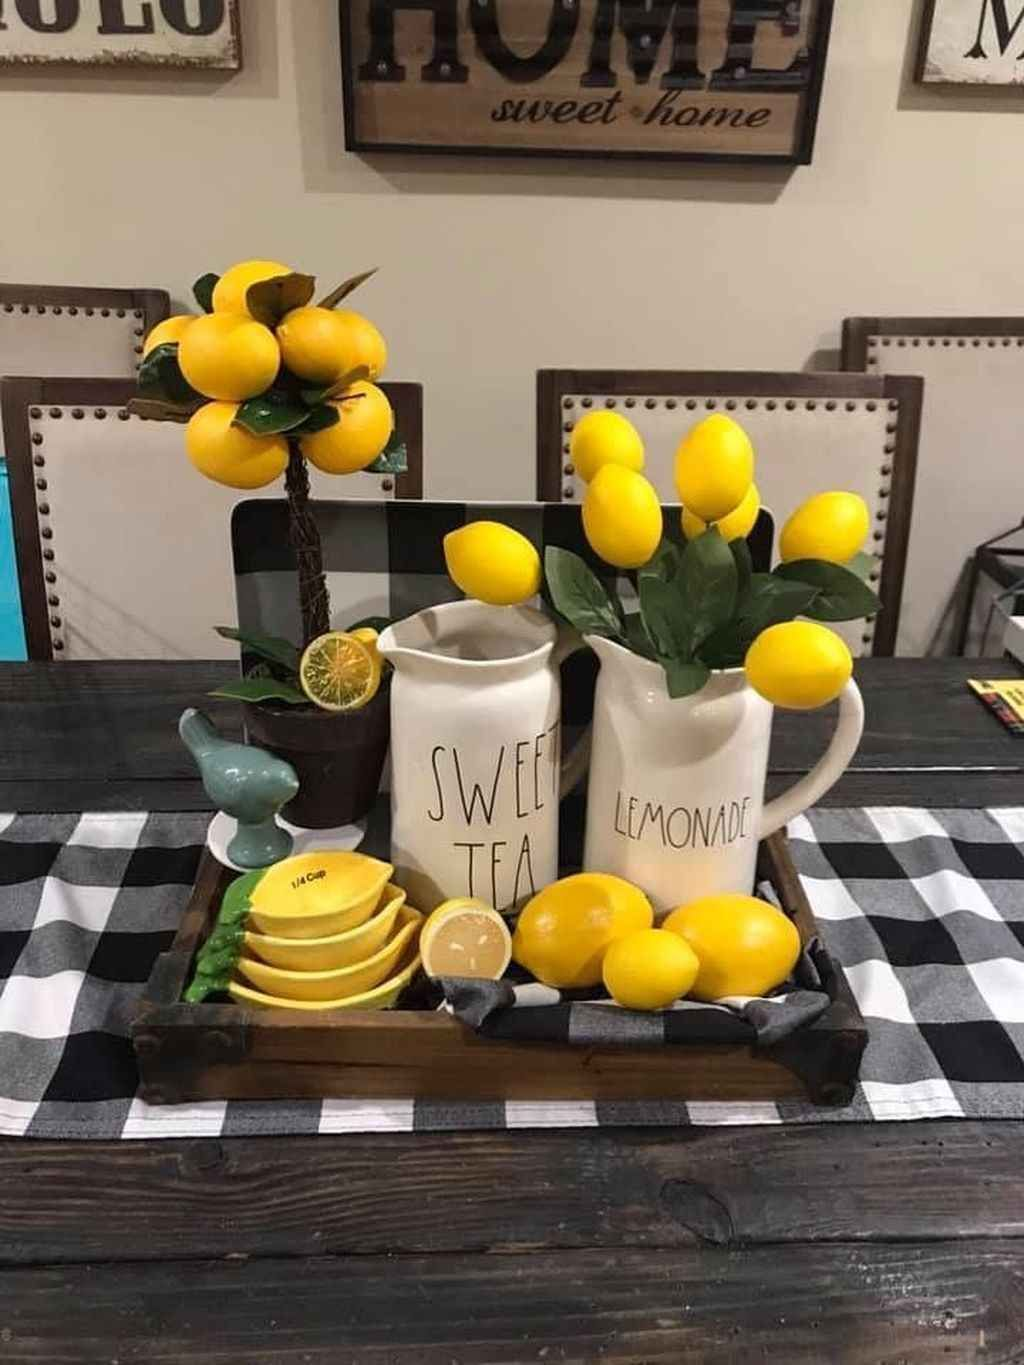 Find Ideas And Tips For Kitchen Decorating From Farmhouse Style Kitchens To Country Vintage Lemon Kitchen Decor Summer Home Decor Lemon Decor